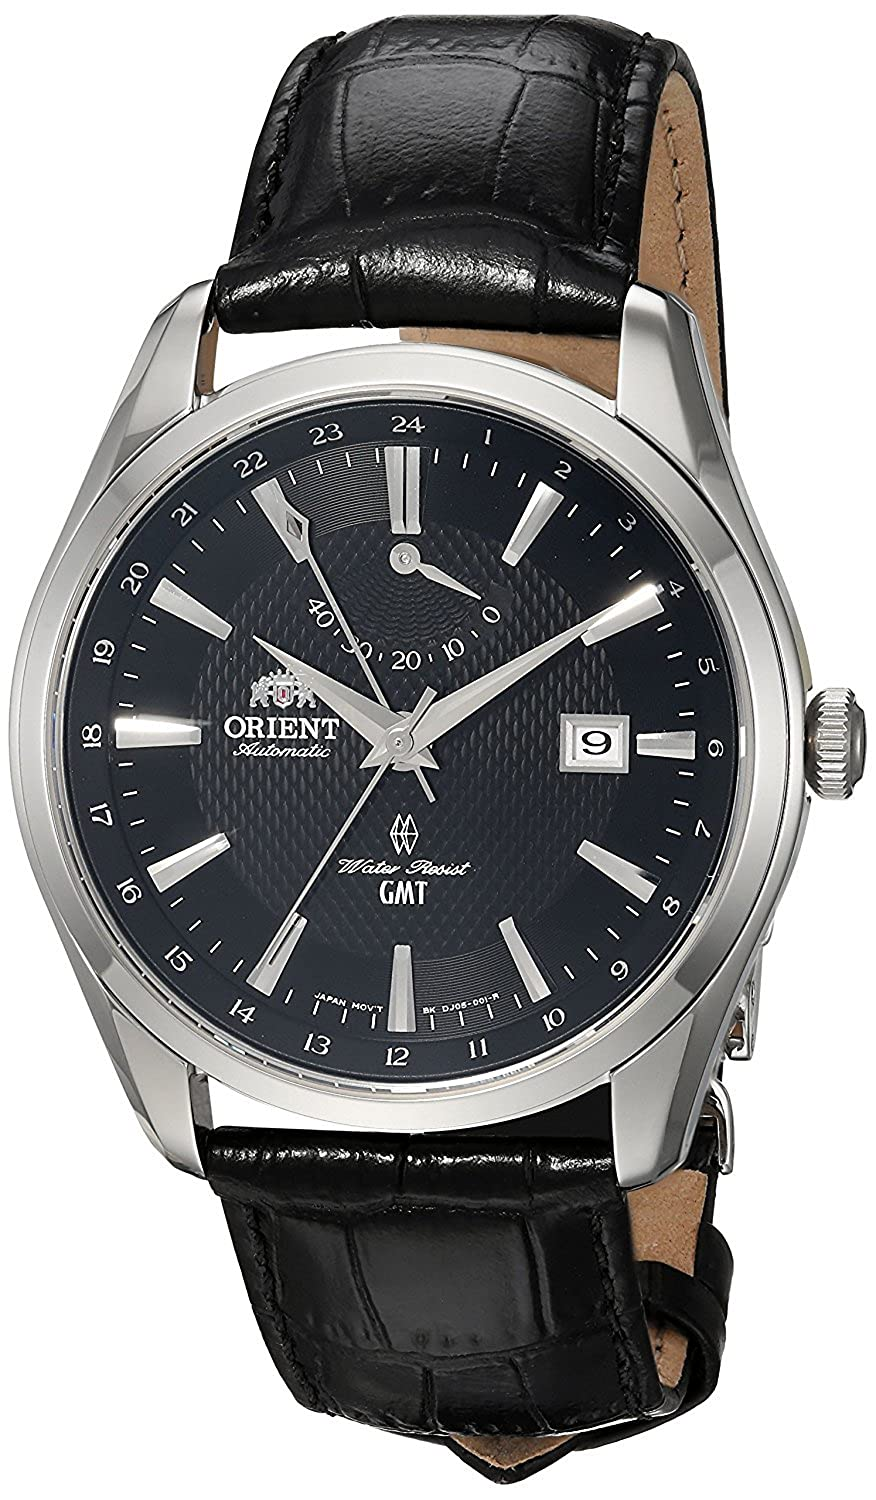 [オリエント]Orient 腕時計 'Polaris GMT' Japanese Automatic Stainless Steel and Leather Dress FDJ05002B0 メンズ [並行輸入品] B0783PJSV4